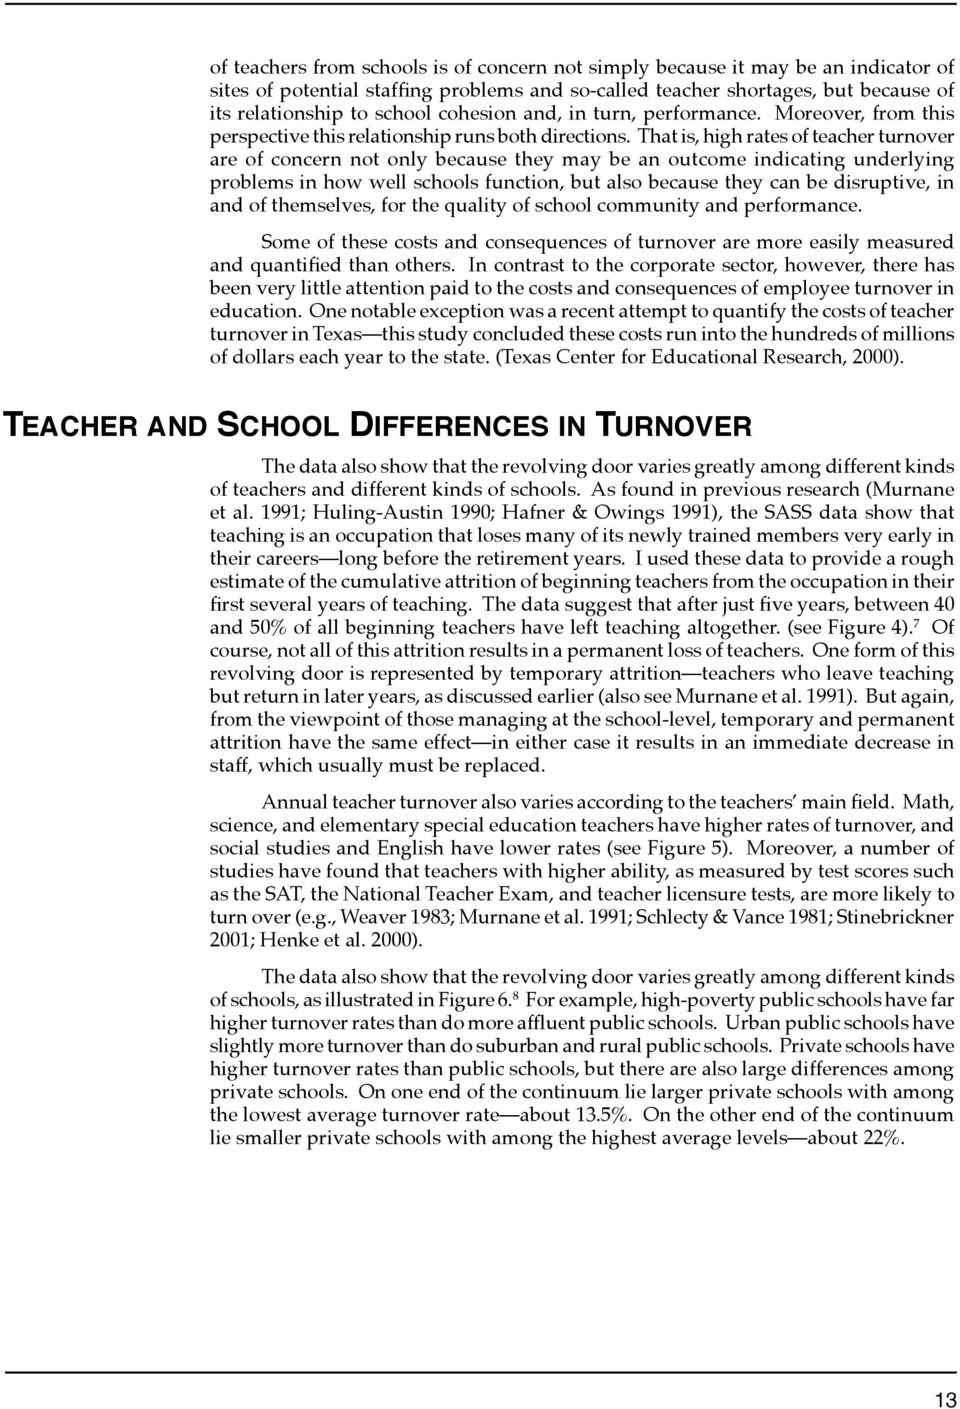 That is, high rates of teacher turnover are of concern not only because they may be an outcome indicating underlying problems in how well schools function, but also because they can be disruptive, in